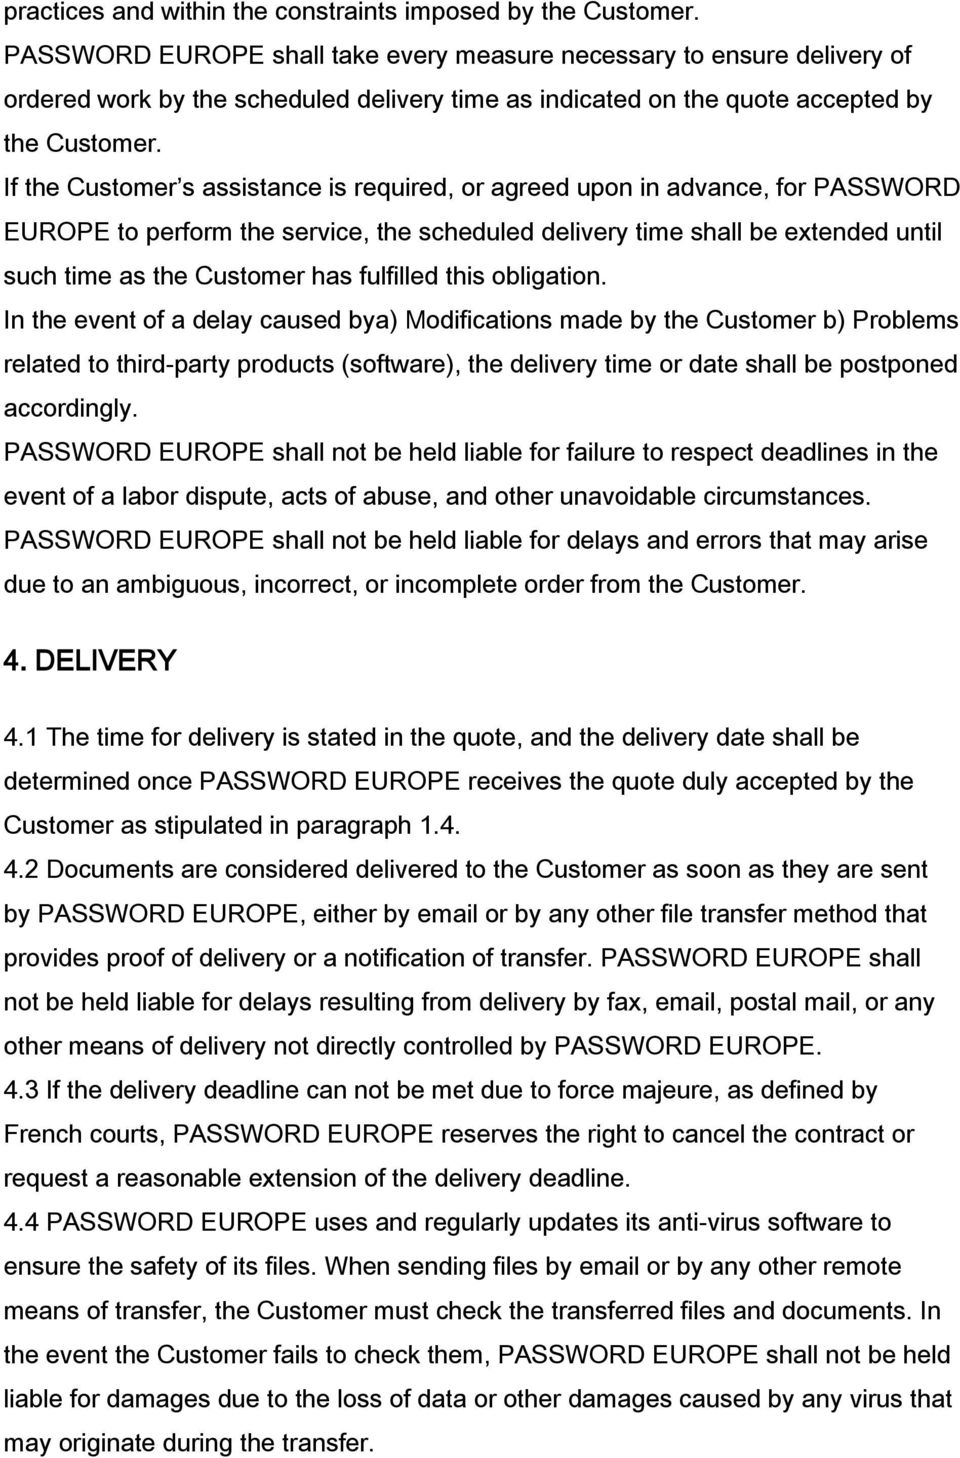 If the Customer s assistance is required, or agreed upon in advance, for PASSWORD EUROPE to perform the service, the scheduled delivery time shall be extended until such time as the Customer has